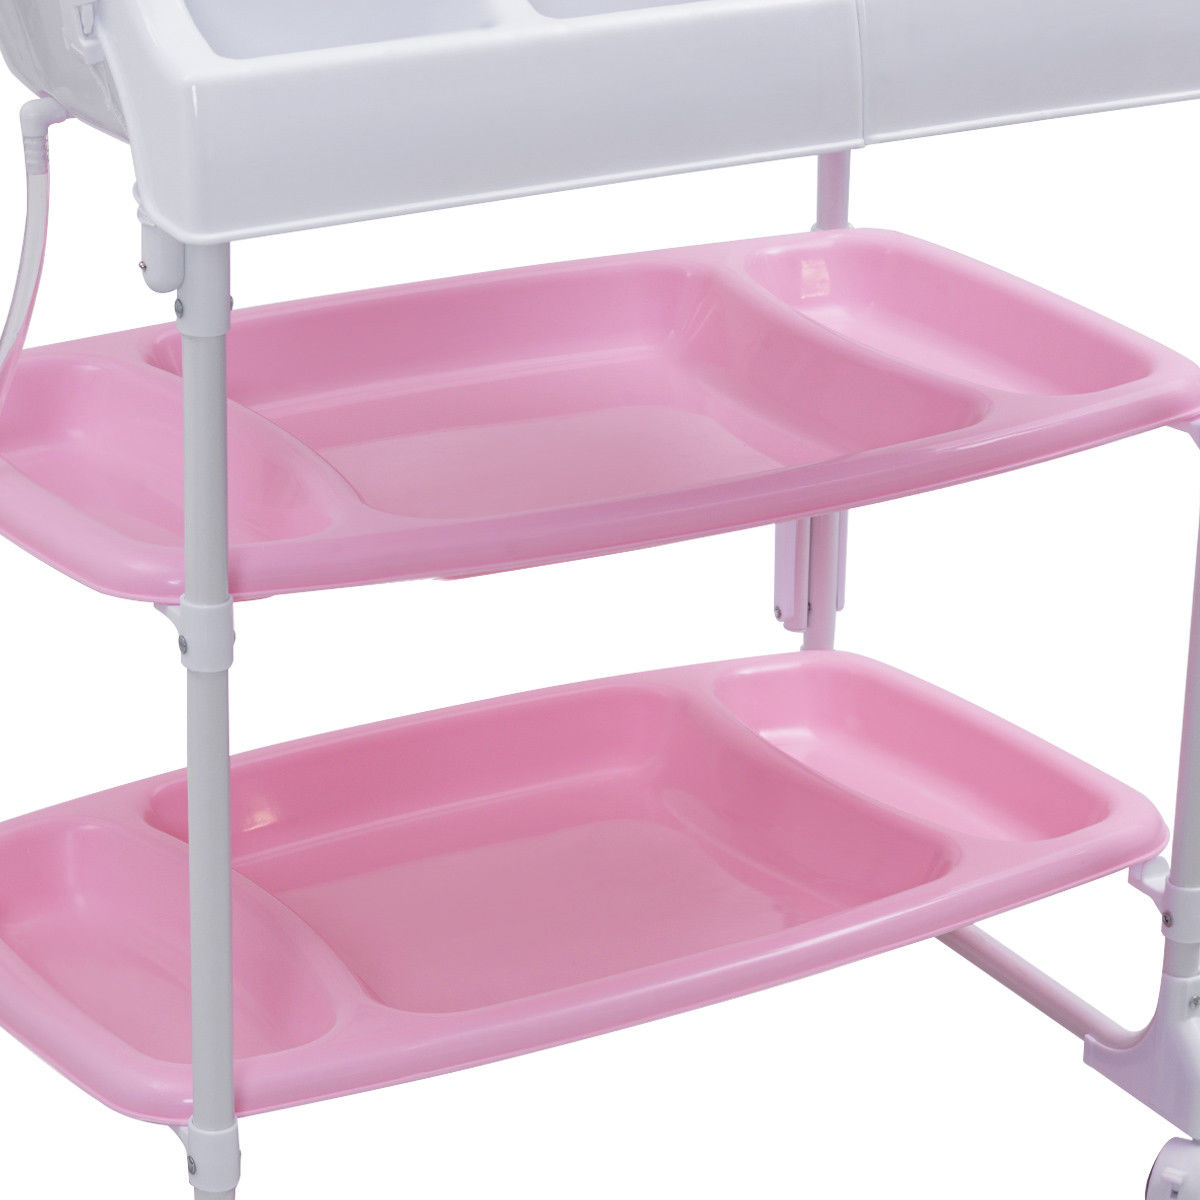 Costway Baby Infant Changing Table Diaper Station Organizer Storage w/ Tube - image 8 de 10